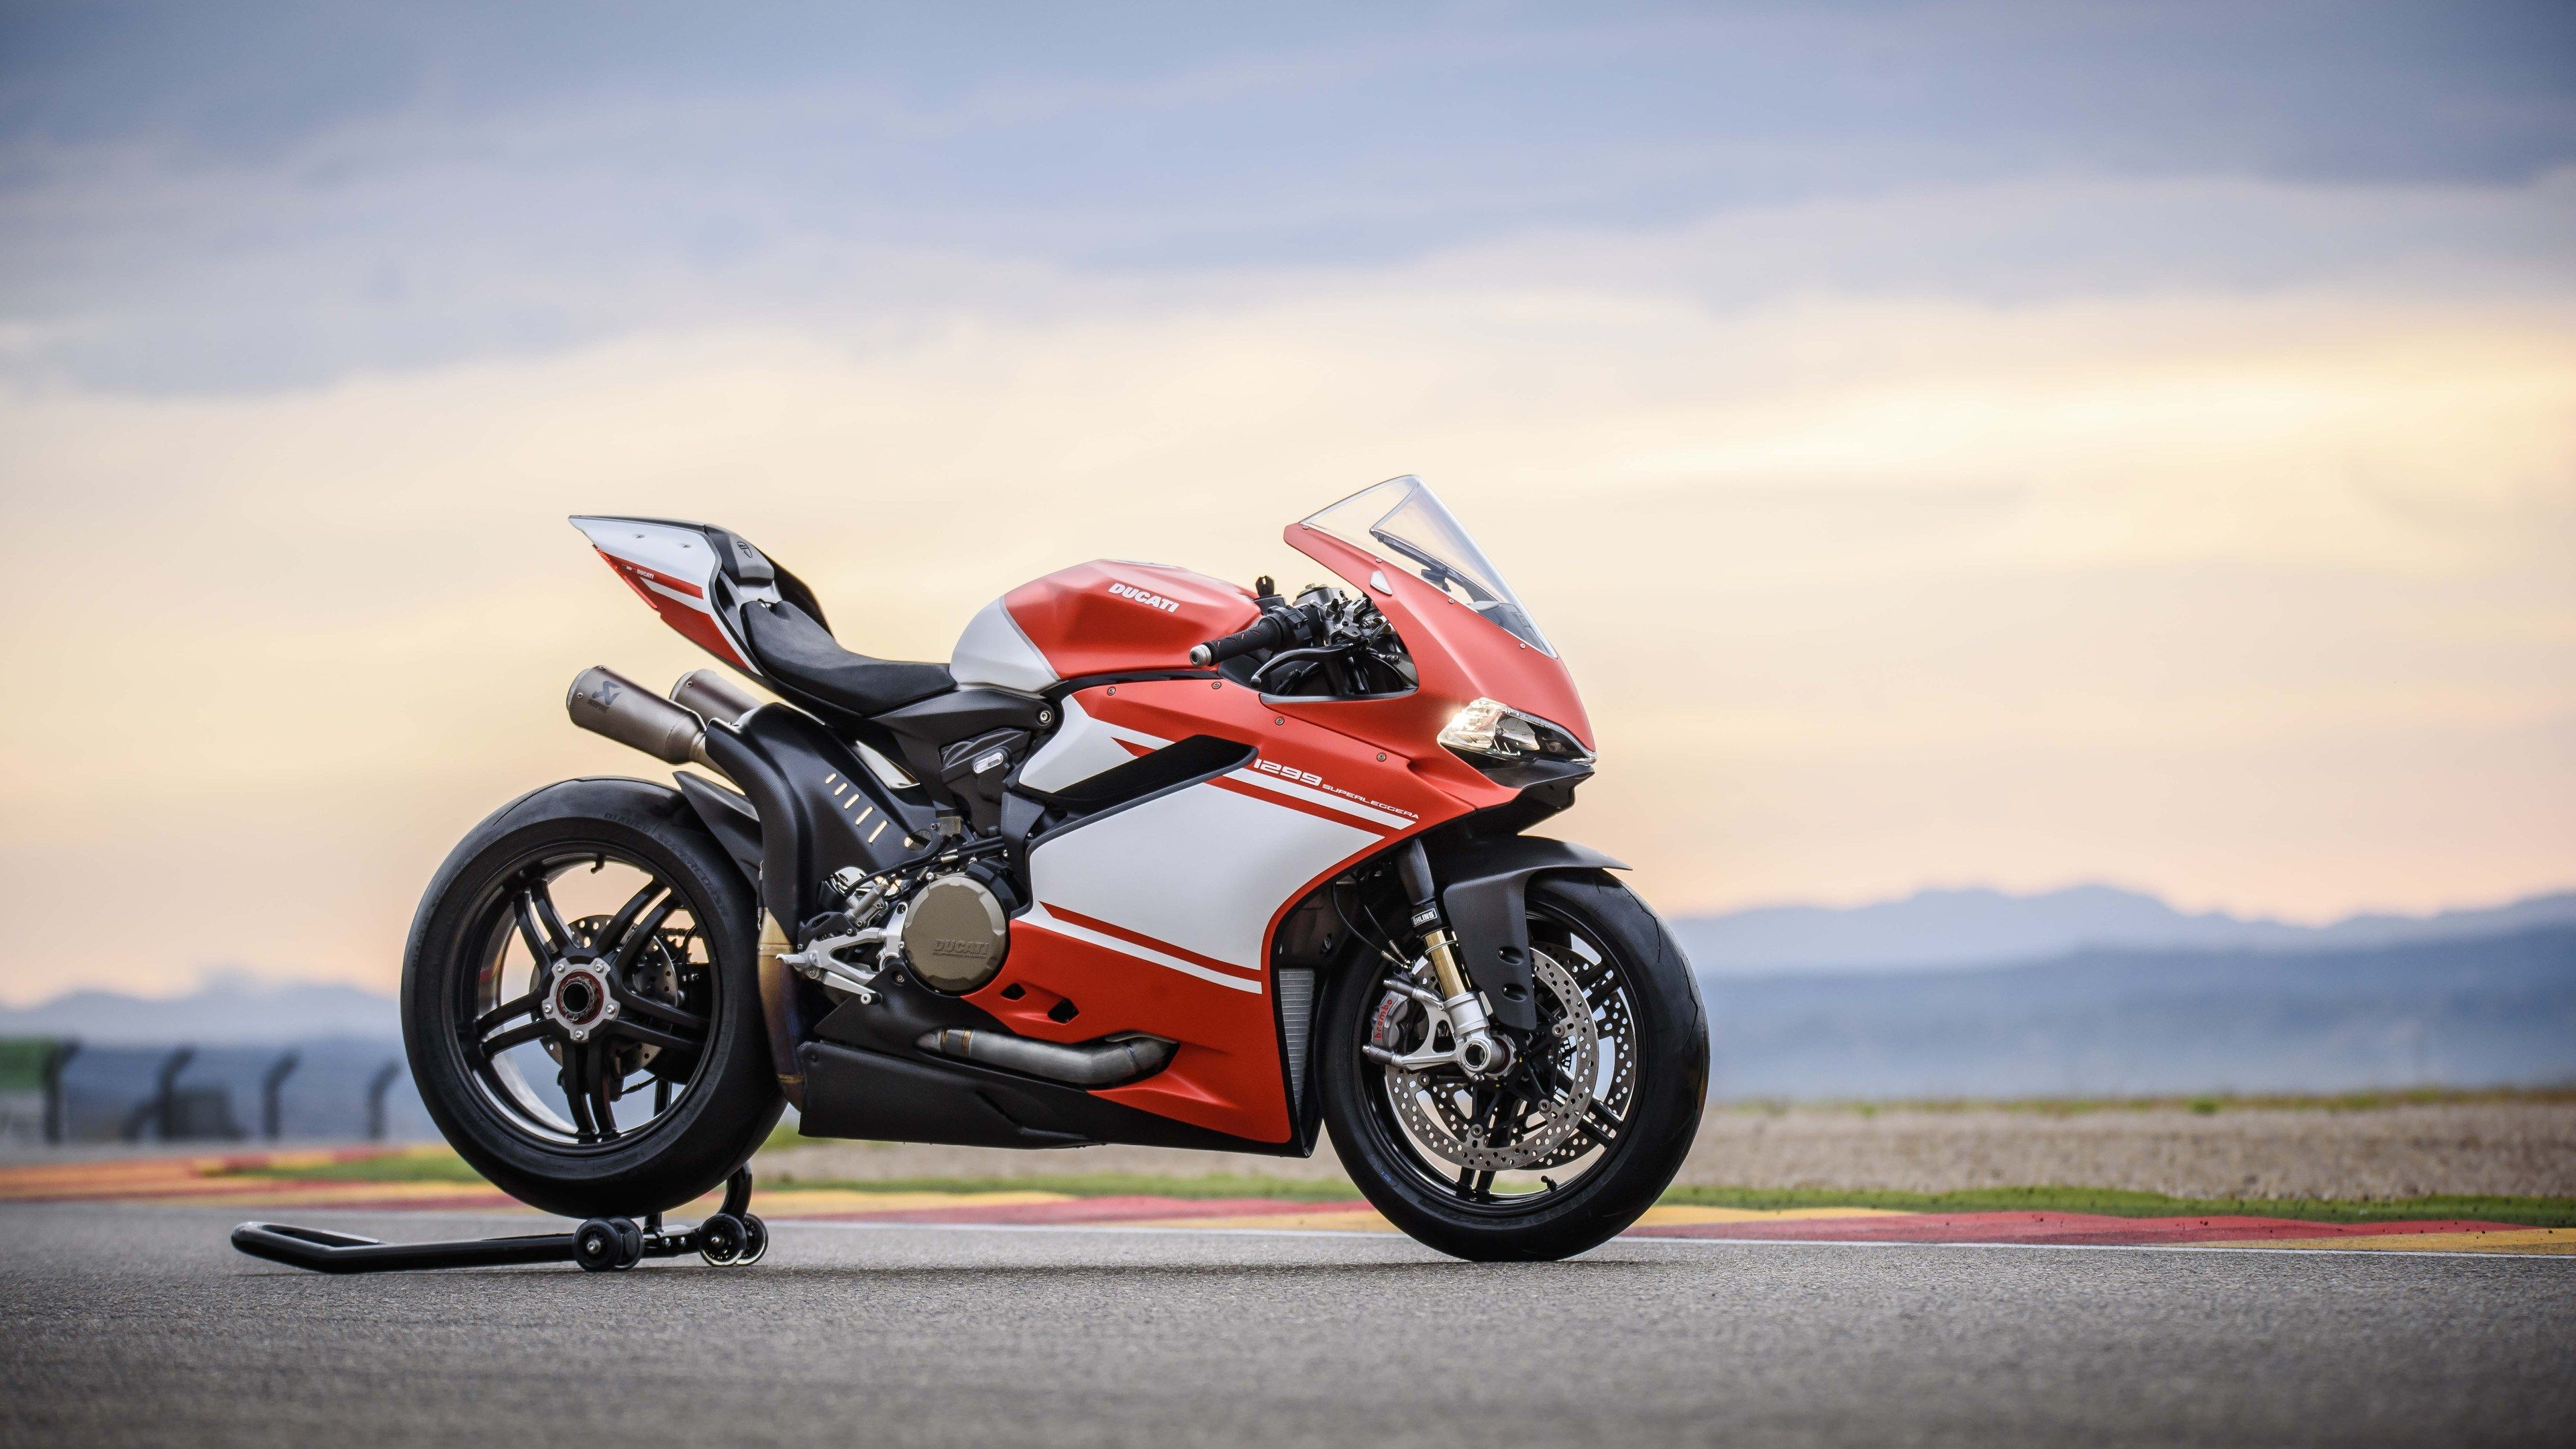 Ducati 1299 Superleggera 4k Hd Wallpapers Ducati Wallpapers